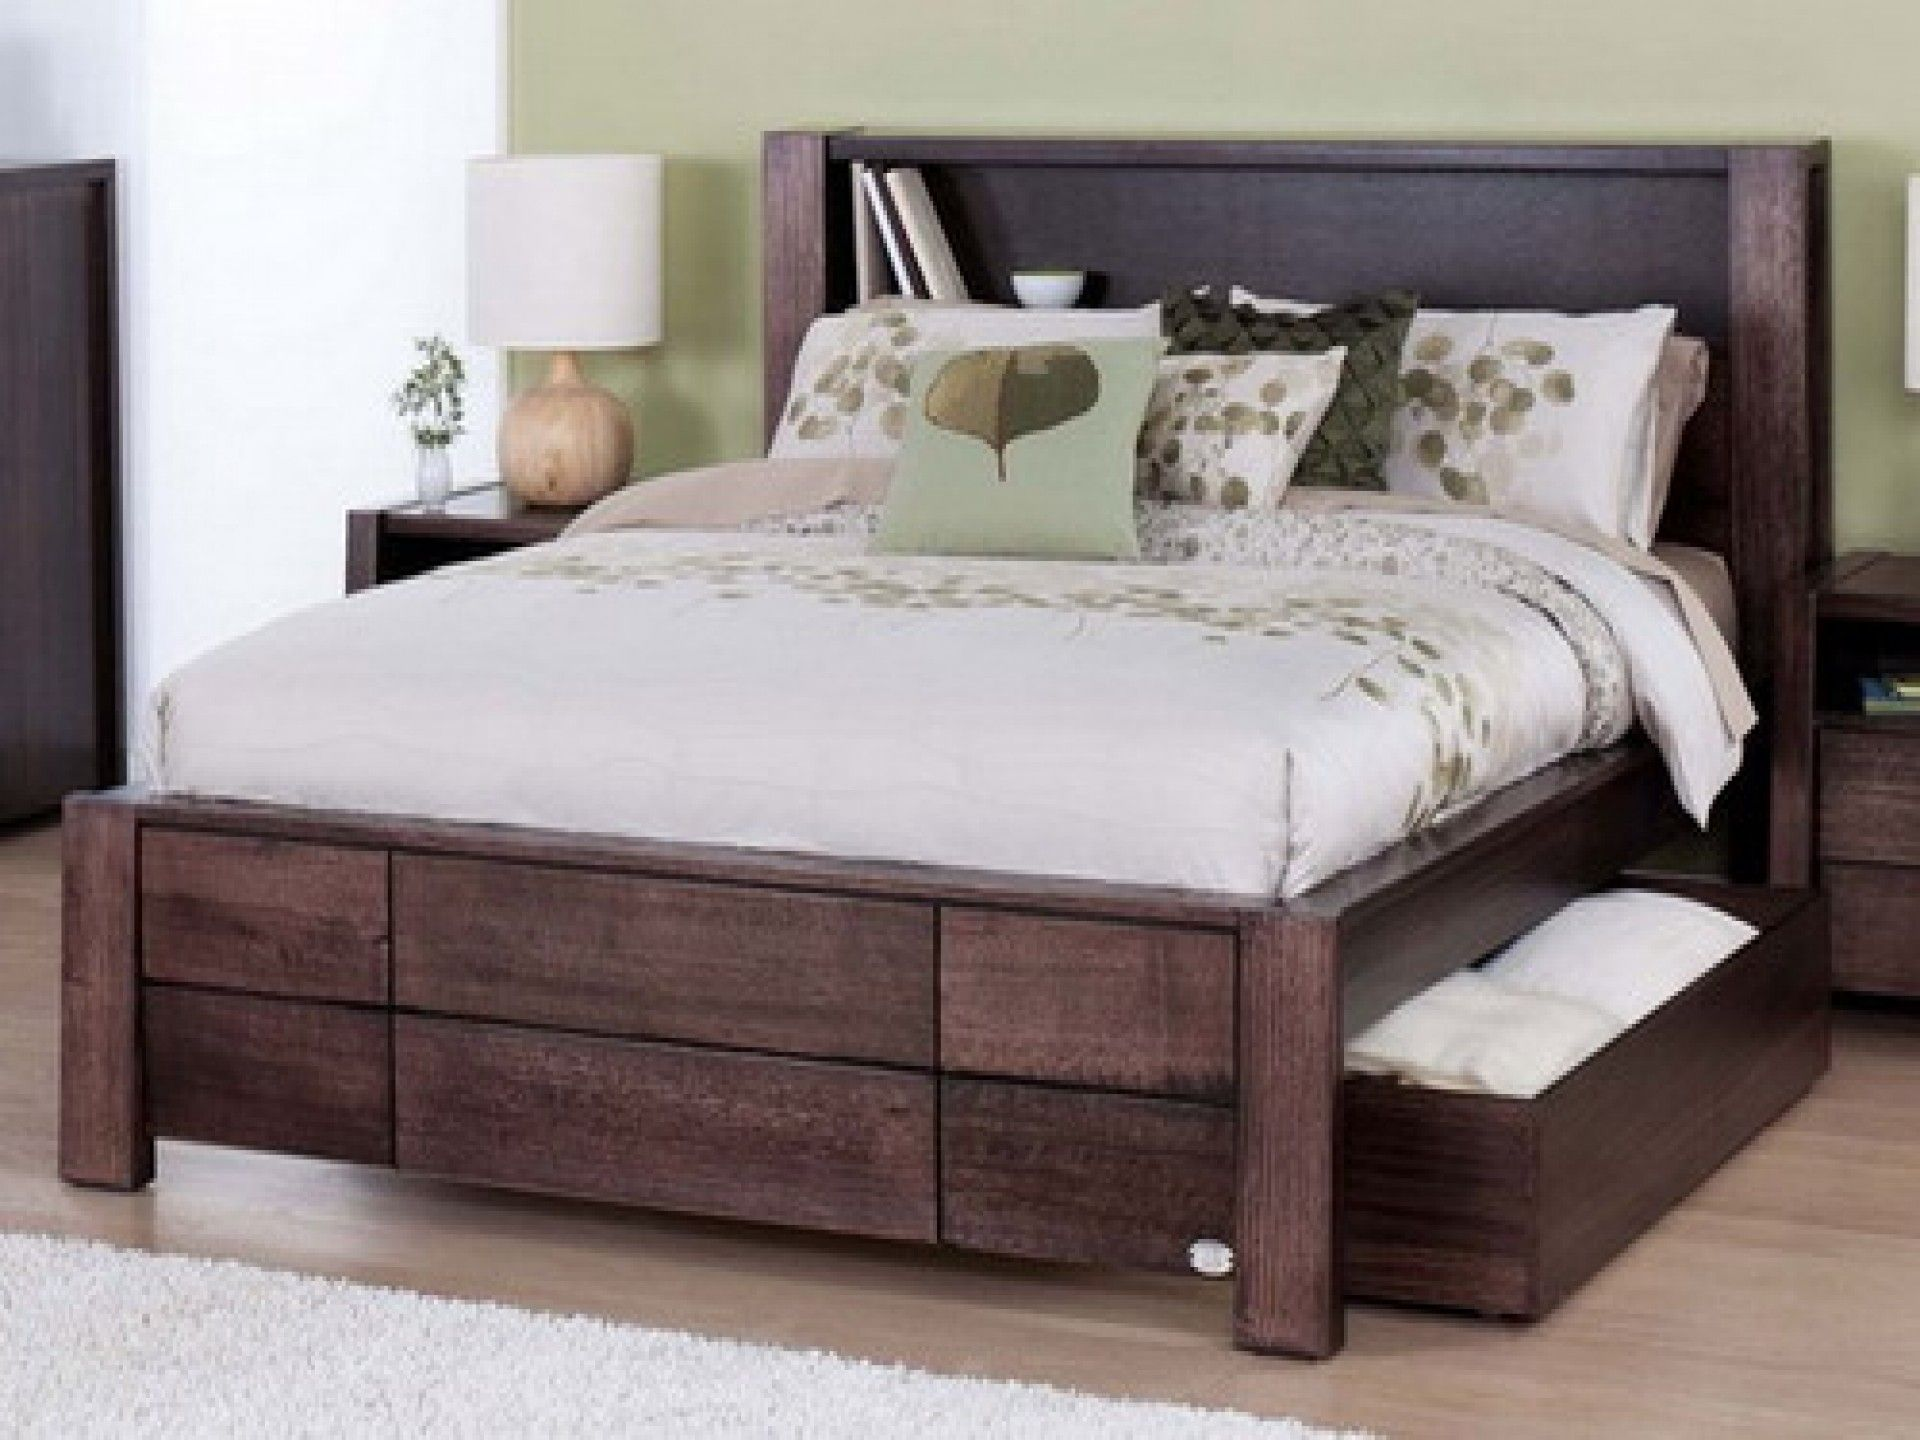 Image result for captain bed king house ideas